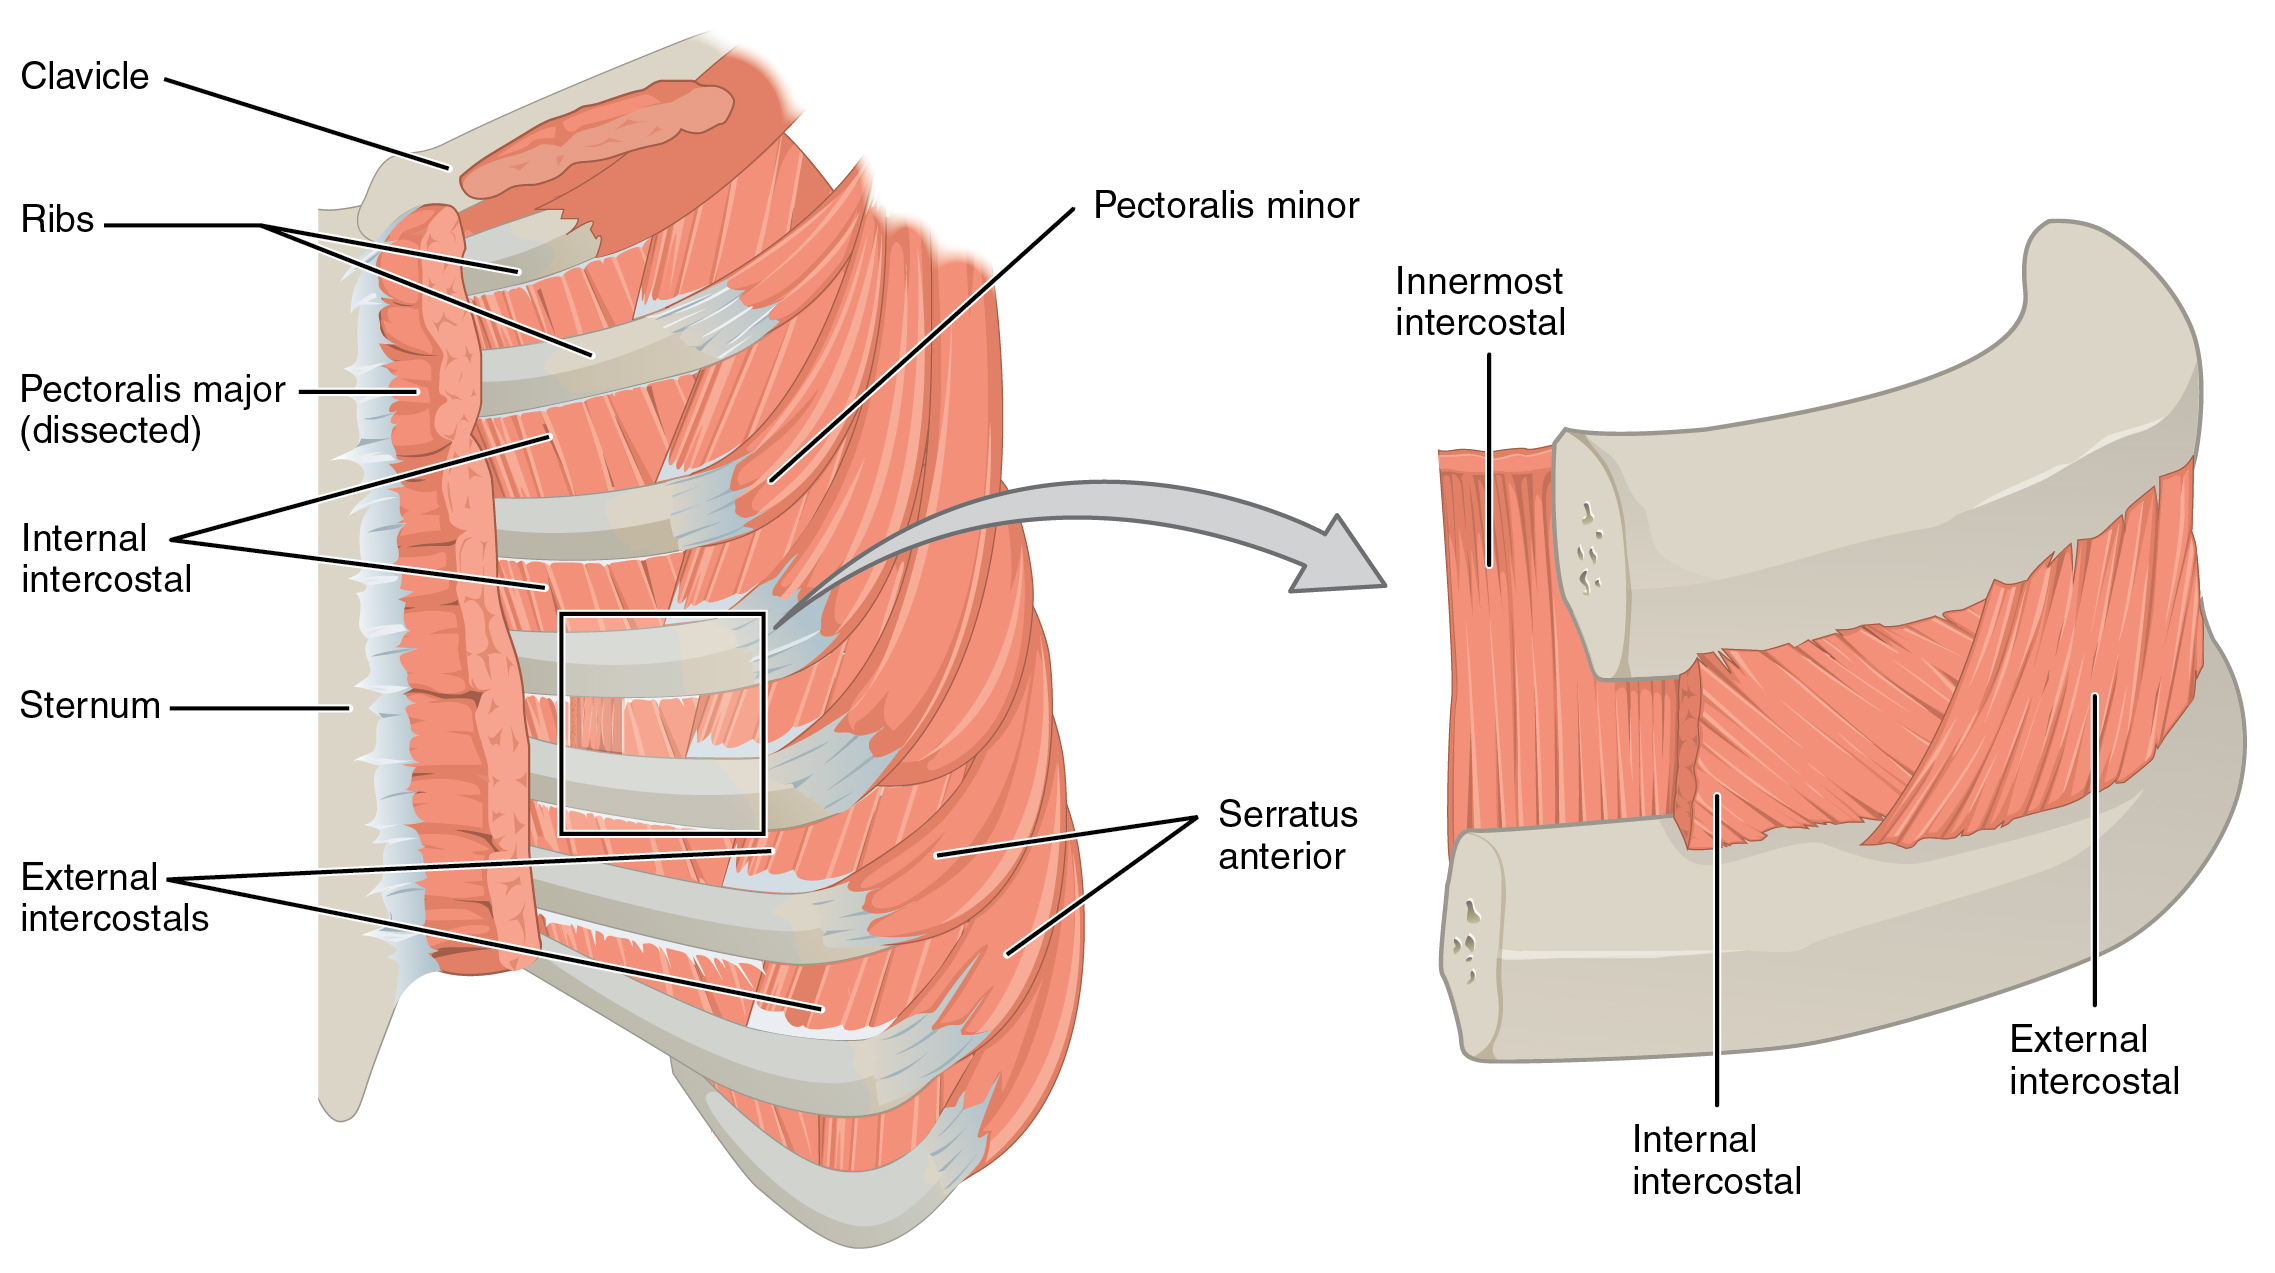 114 Axial Muscles Of The Abdominal Wall And Thorax Anatomy Chicken Wing Tendon Diagram Muscular System Body Systems This Figure Shows In Left Panel Ribs